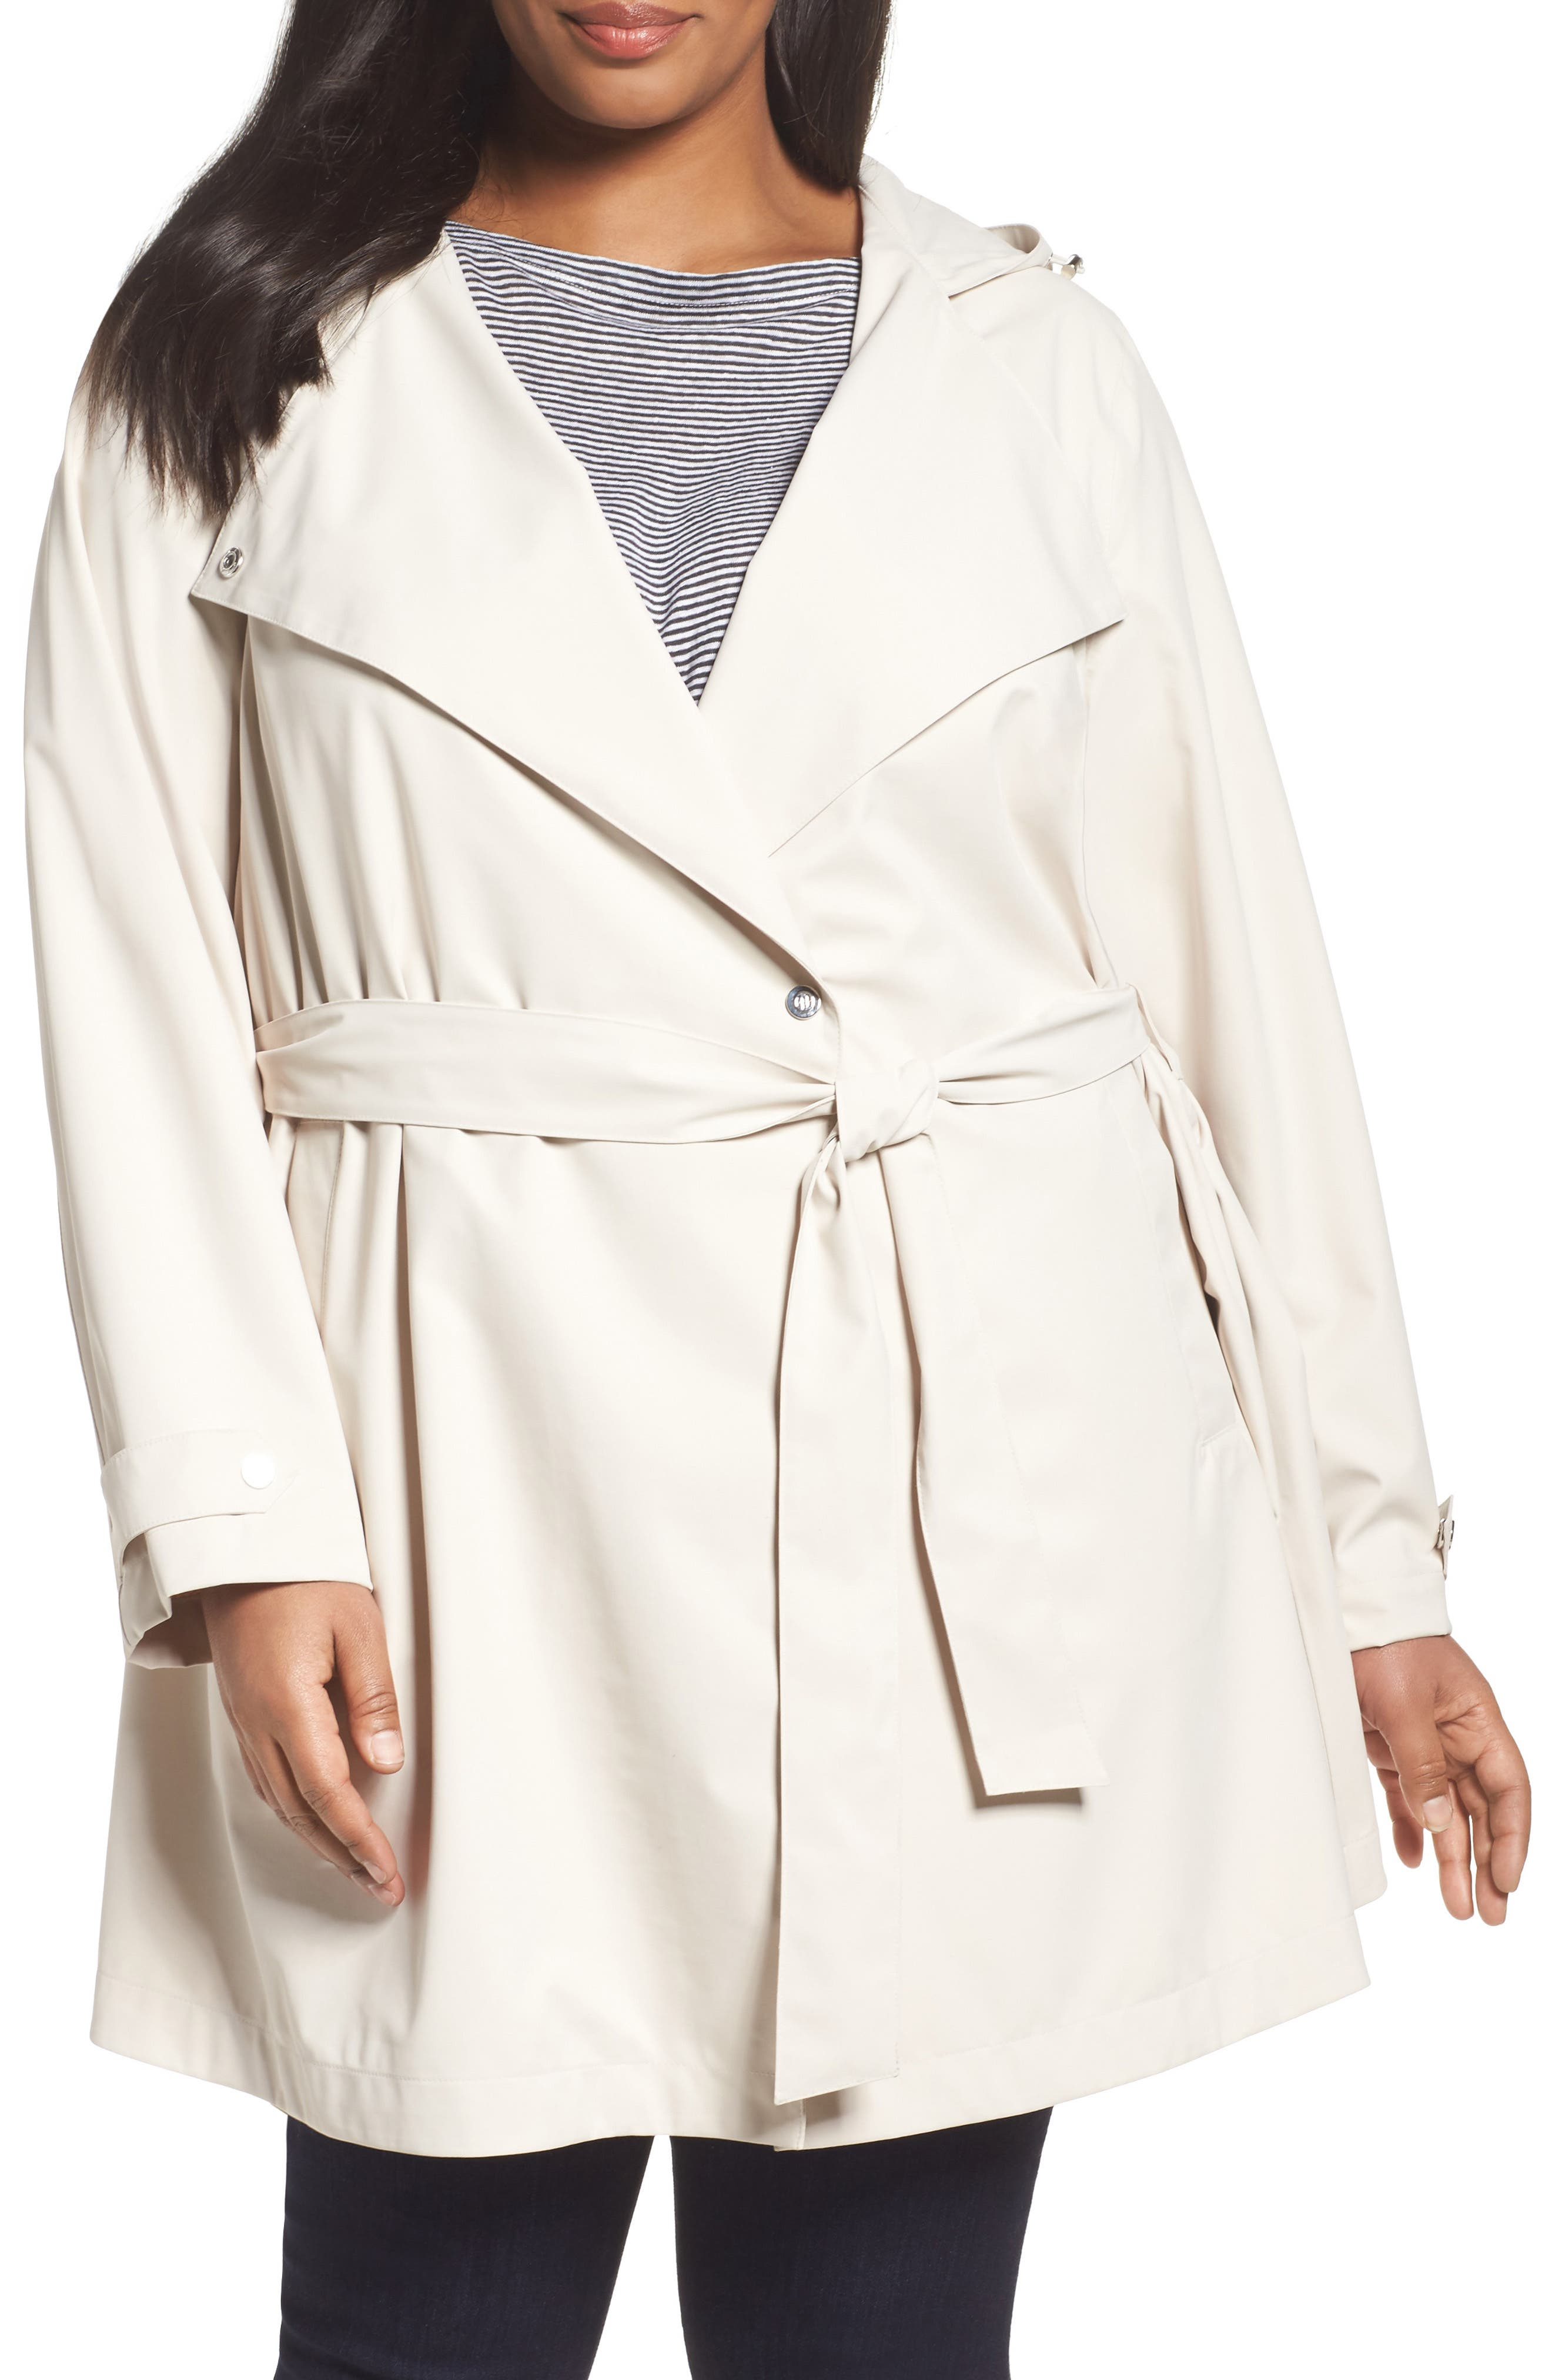 Breathable Microfiber Trench Coat,                             Main thumbnail 1, color,                             250